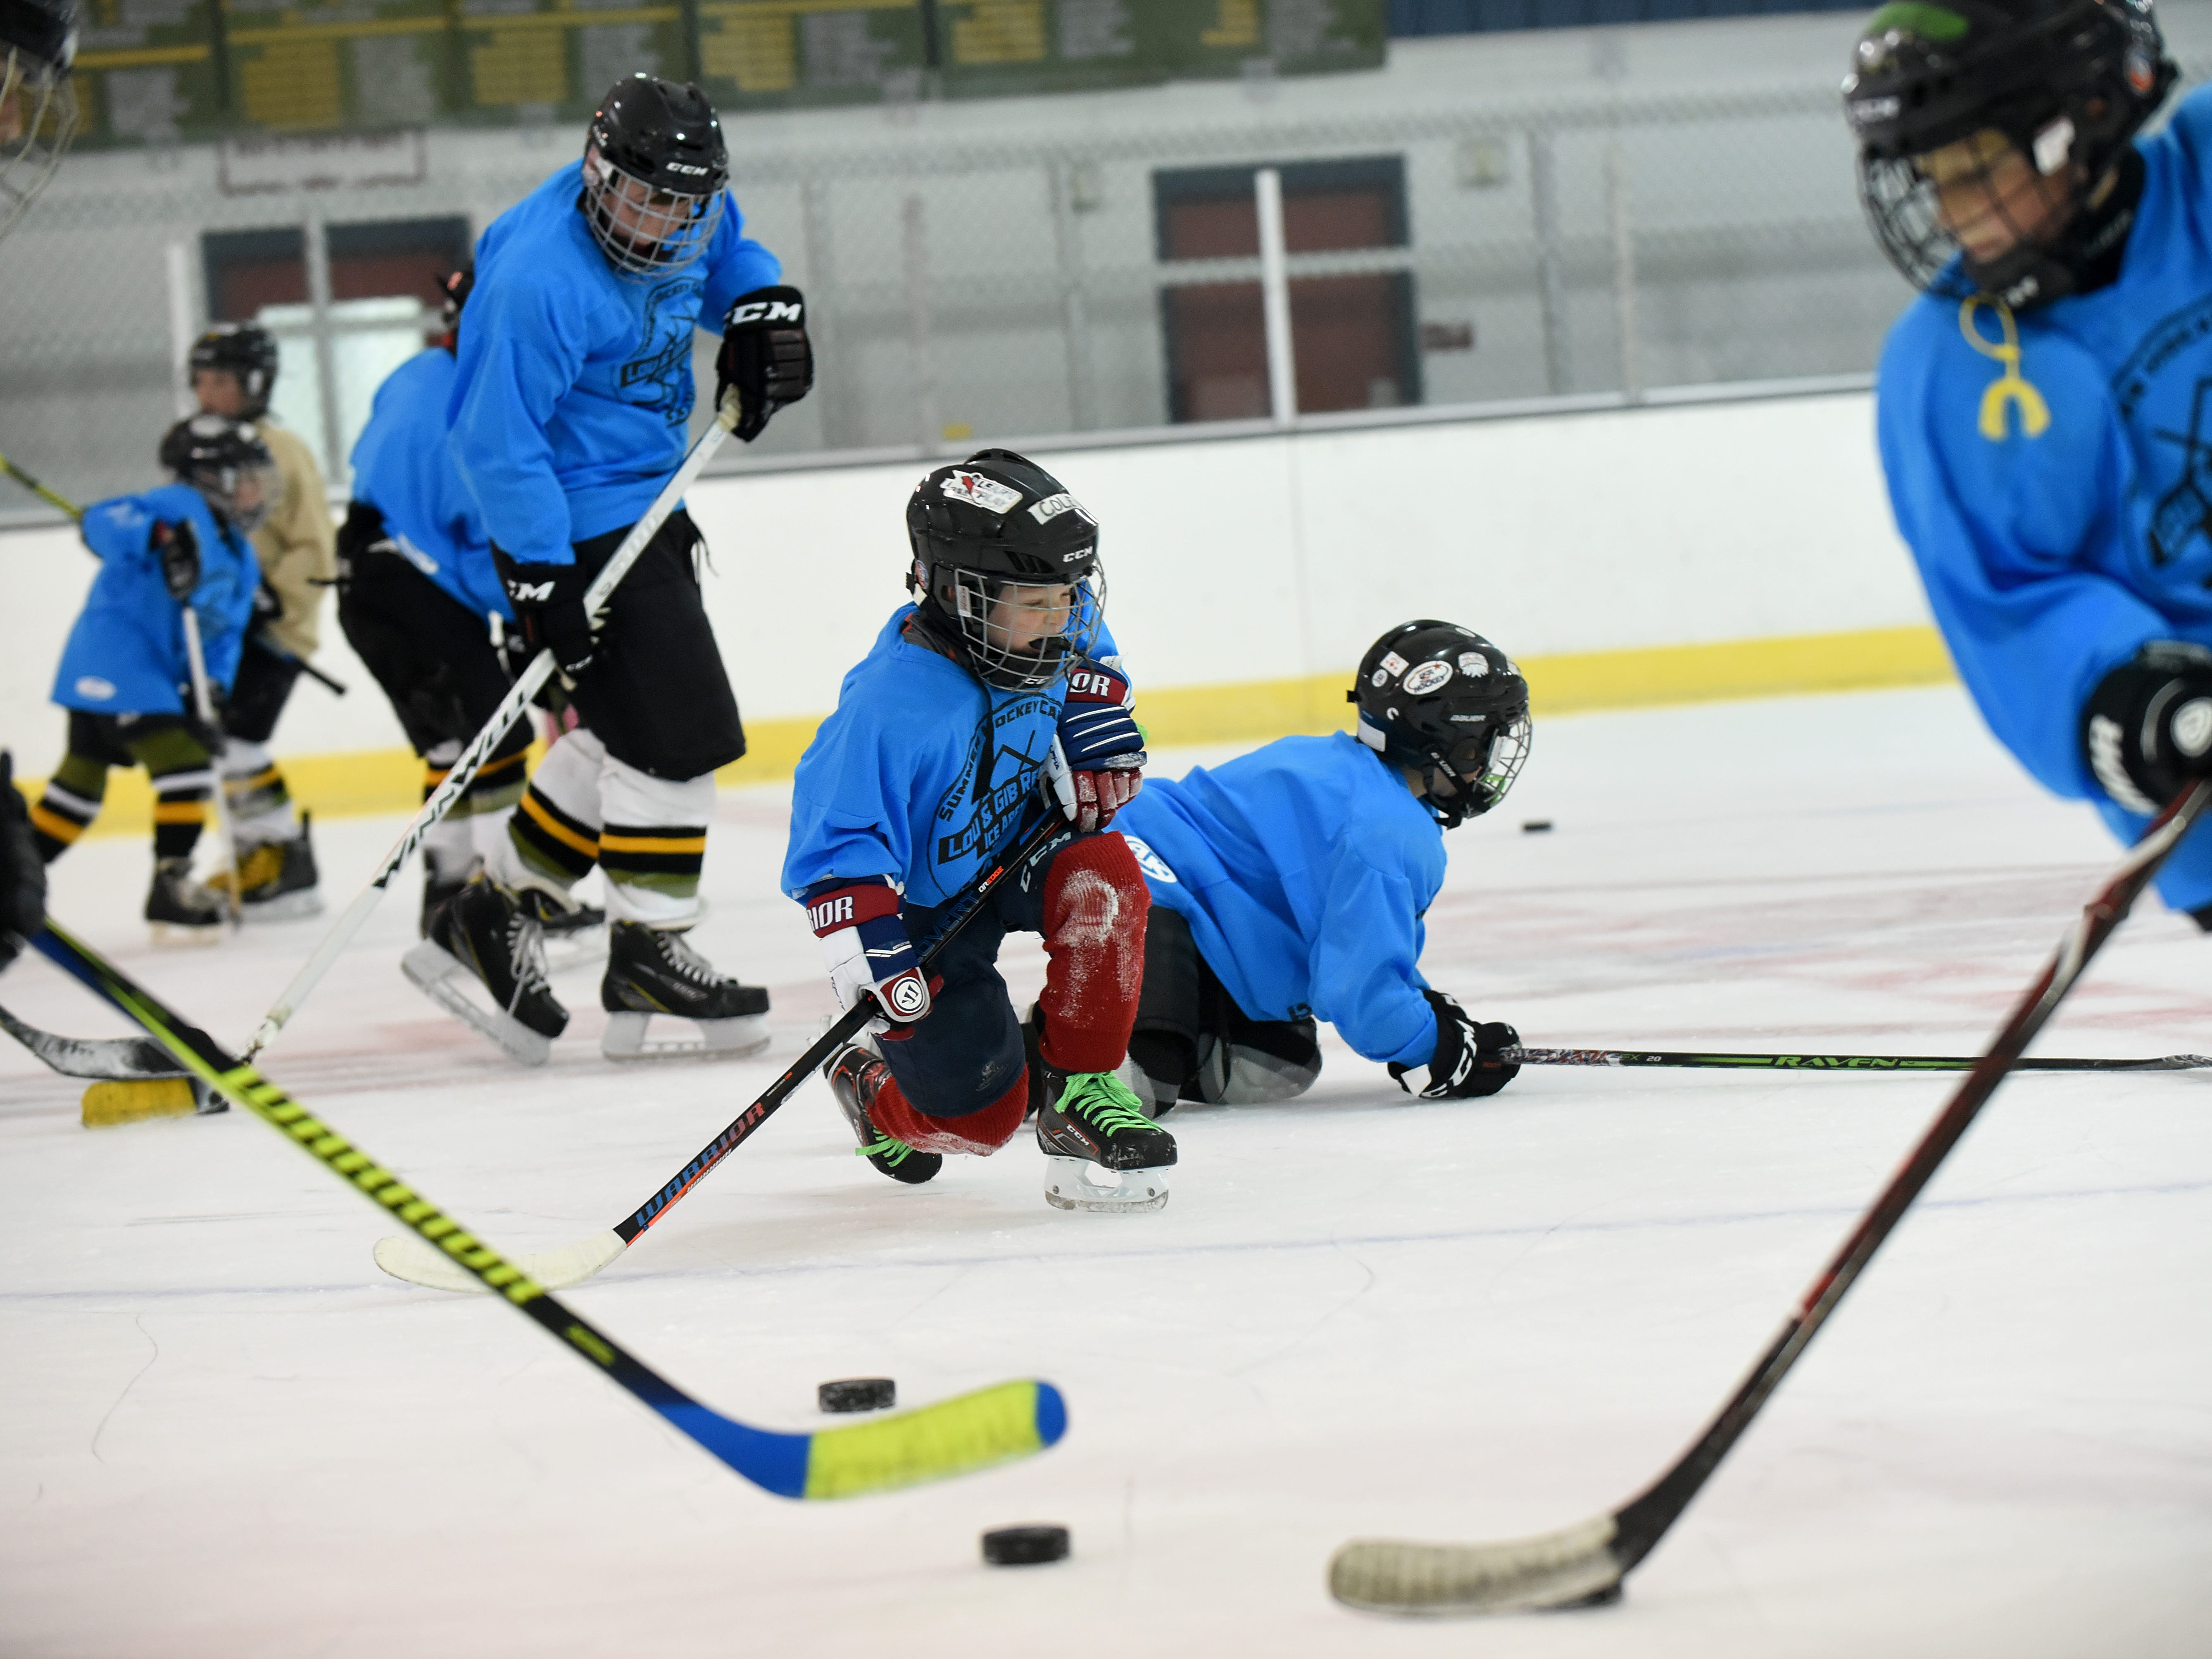 Youth hockey camps Monday morning at Lou & Gib Reese Ice Arena in Newark. Monday was the first day of the season at the ice rink on the fresh ice.